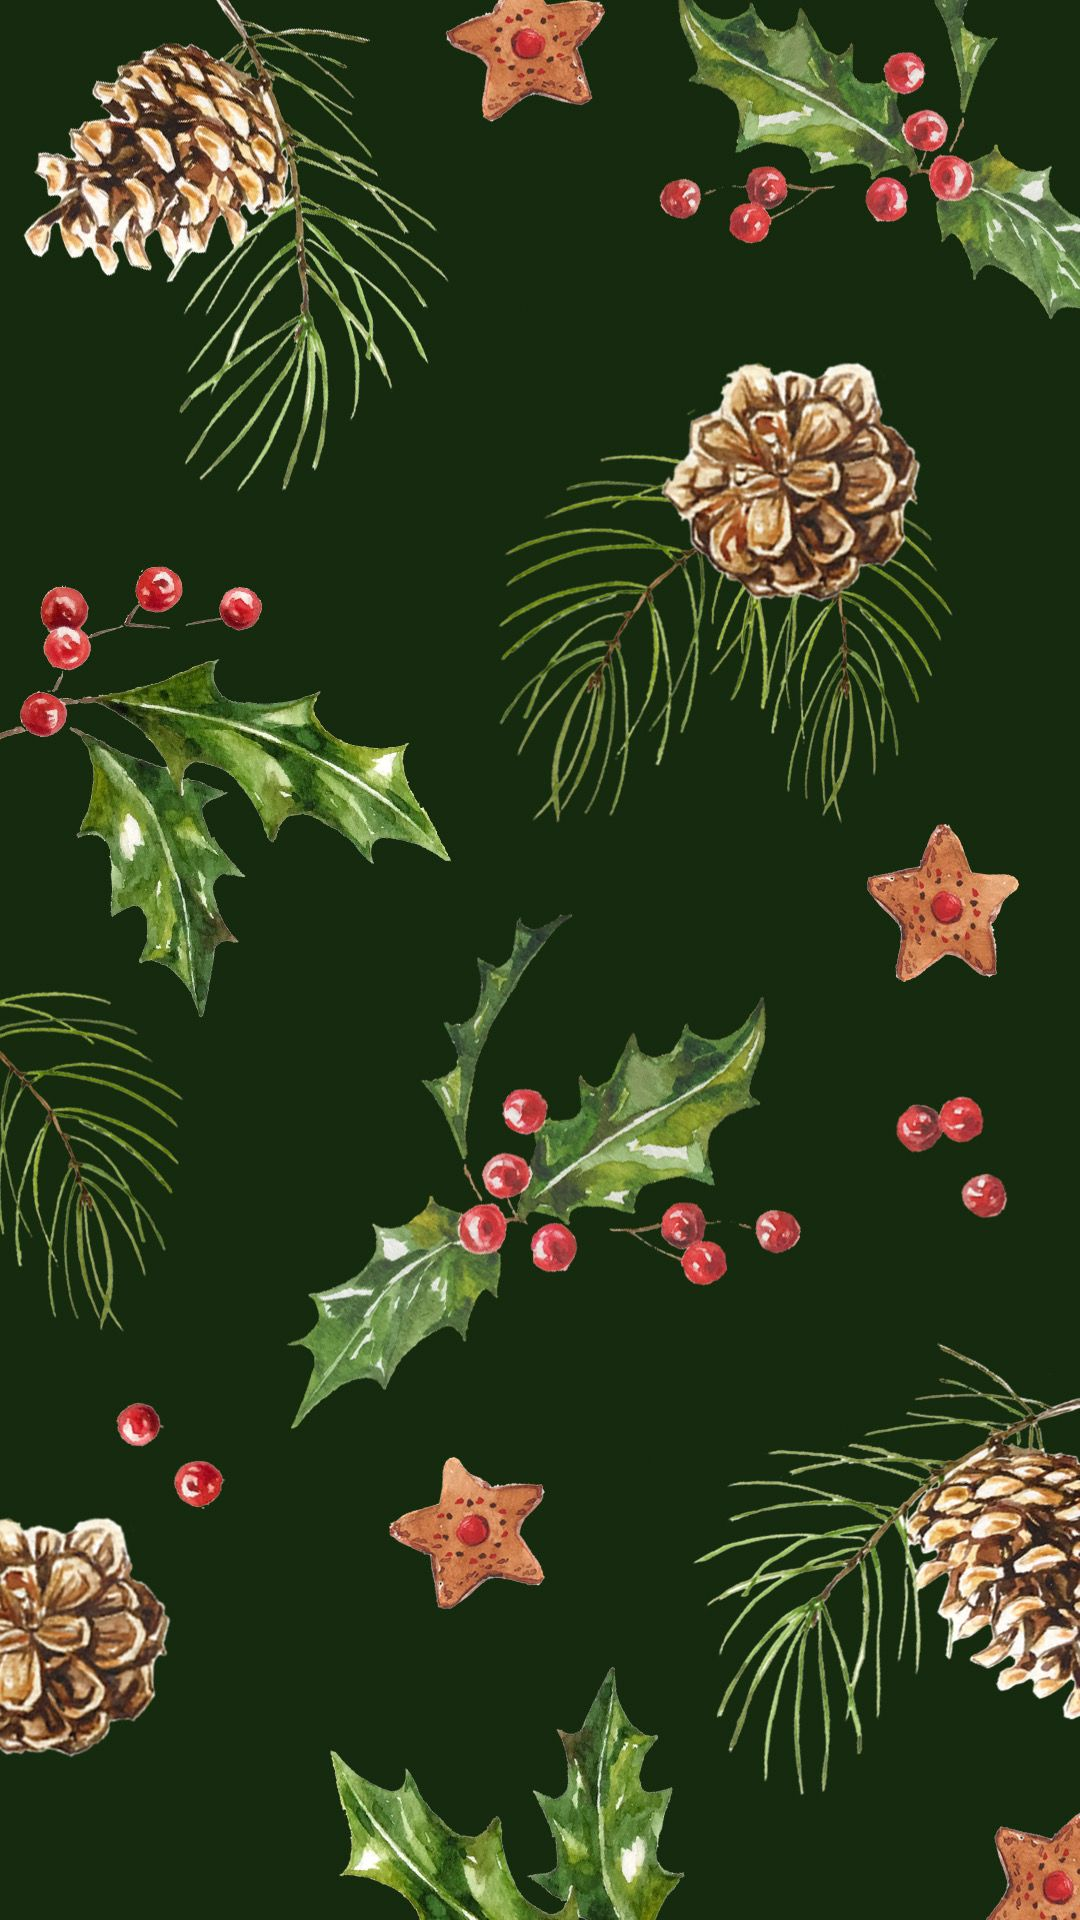 Pin by Kathy on Christmas Wallpapers in 2019